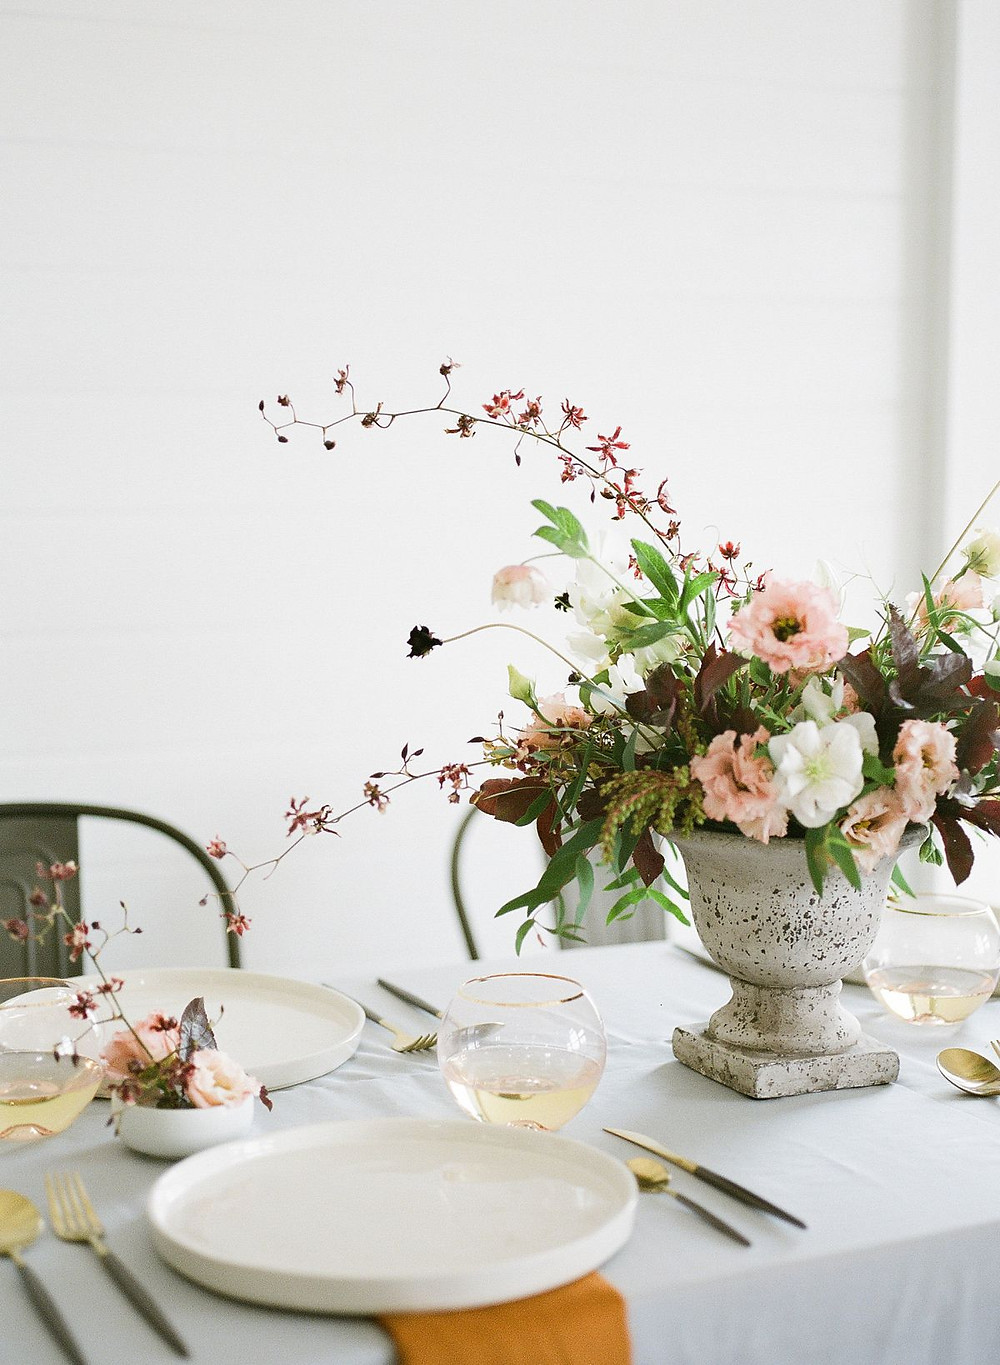 muted minimalist wedding centerpiece by Studio Bloom Iowa with orchids, lisianthus, and hellebores